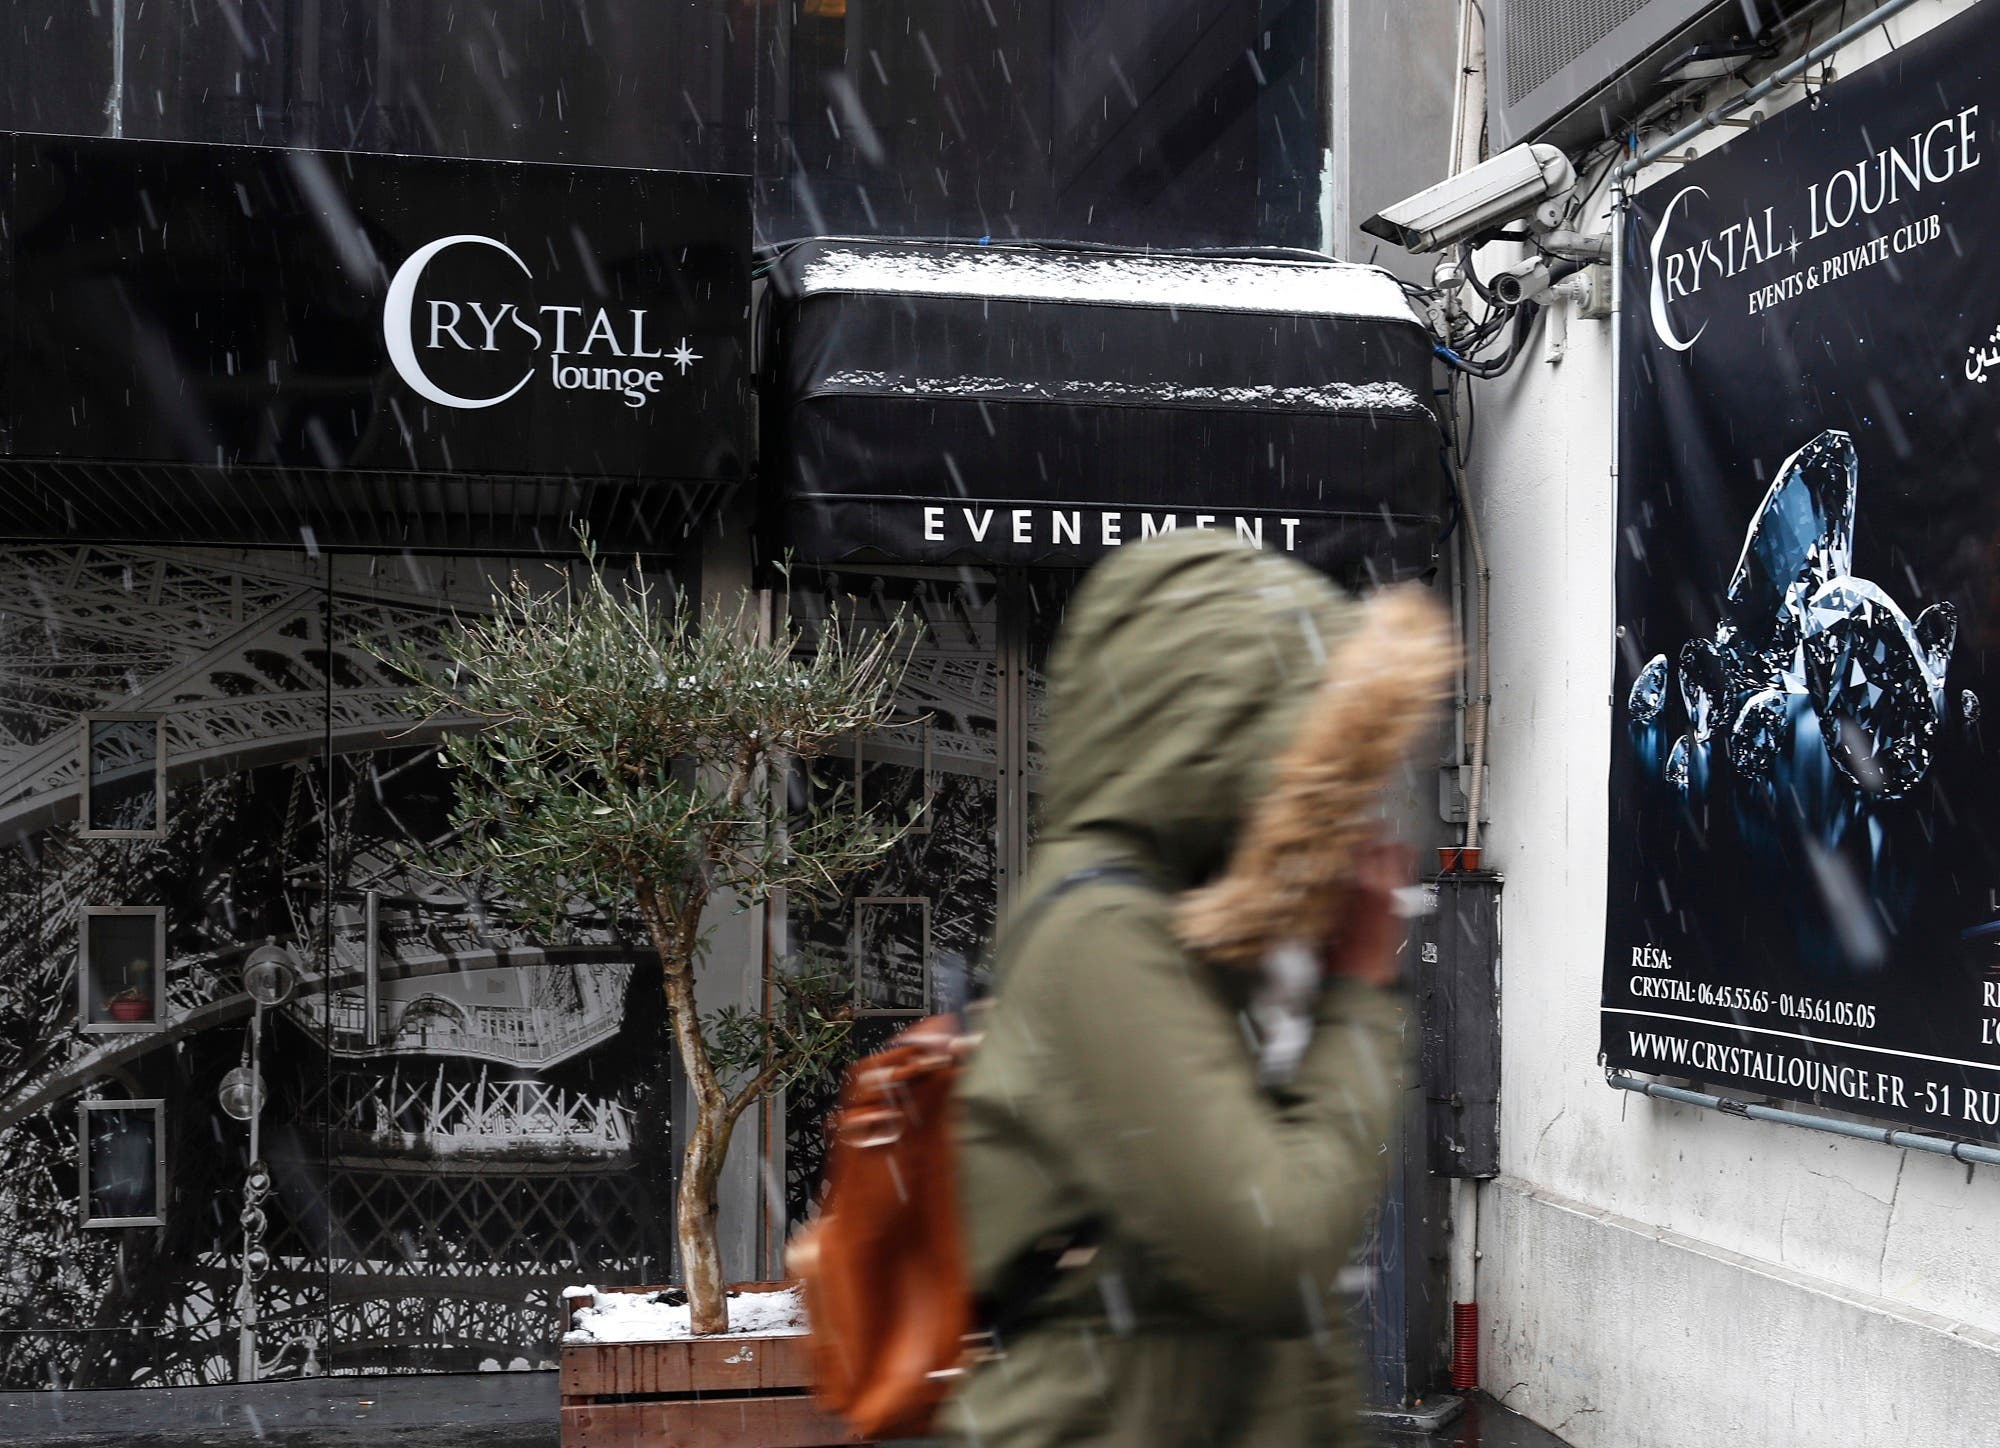 The Crystal Club in Paris, on January 22, 2019, where the woman who filed the complaint said she met Brown and his friends. (AP)